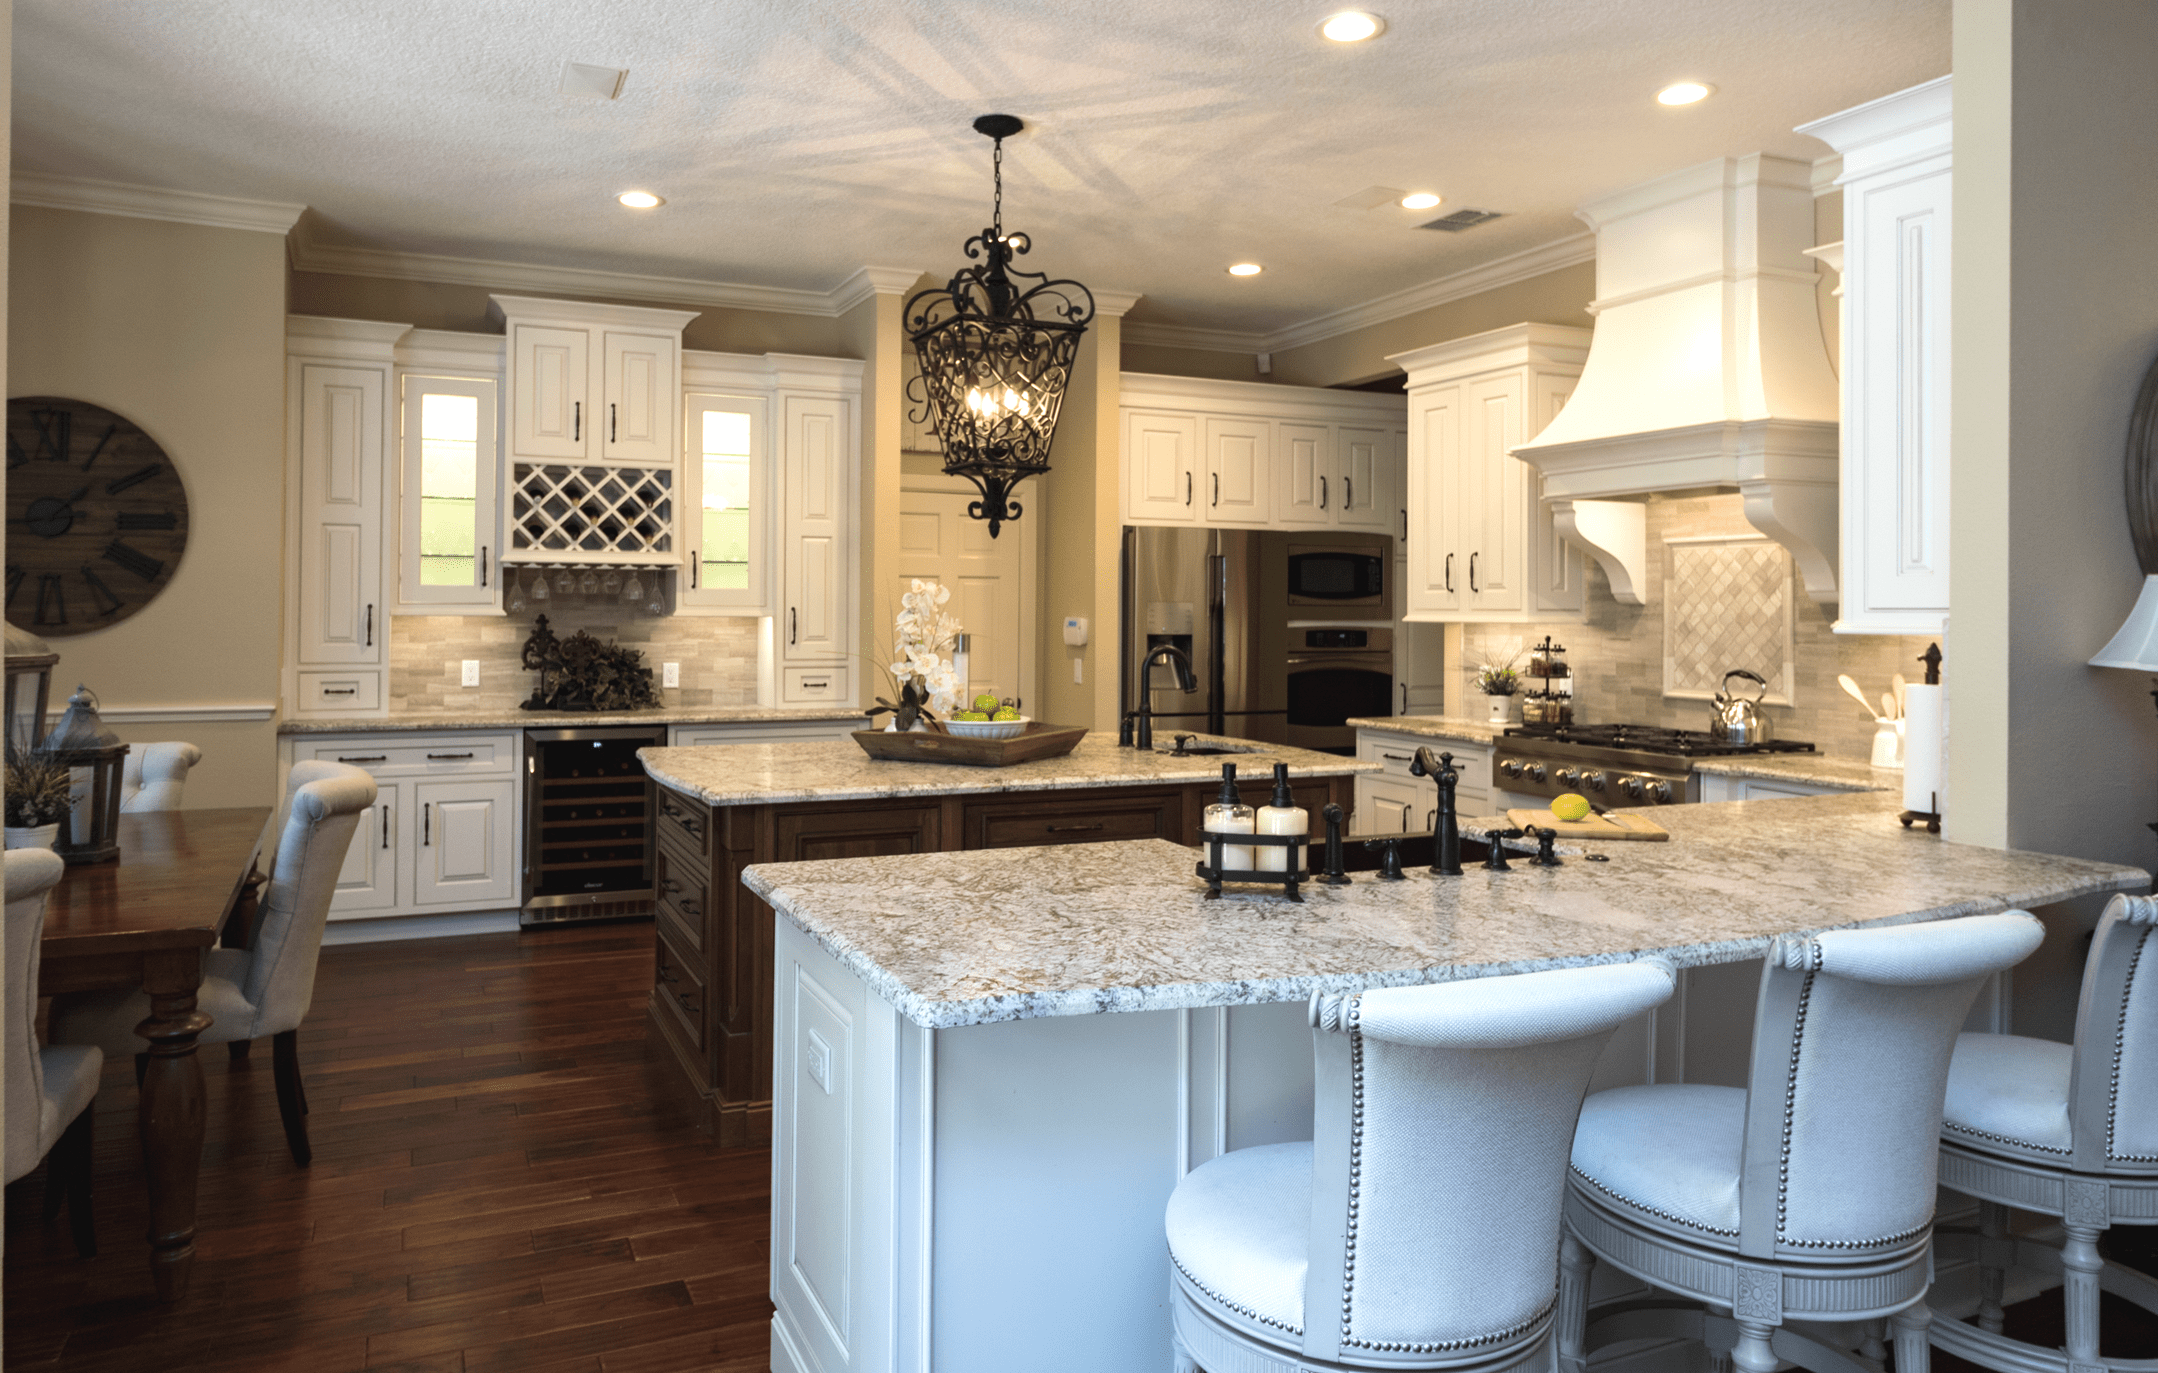 Kitchen bathroom remodeling services in orlando kbf for Bathroom remodel orlando